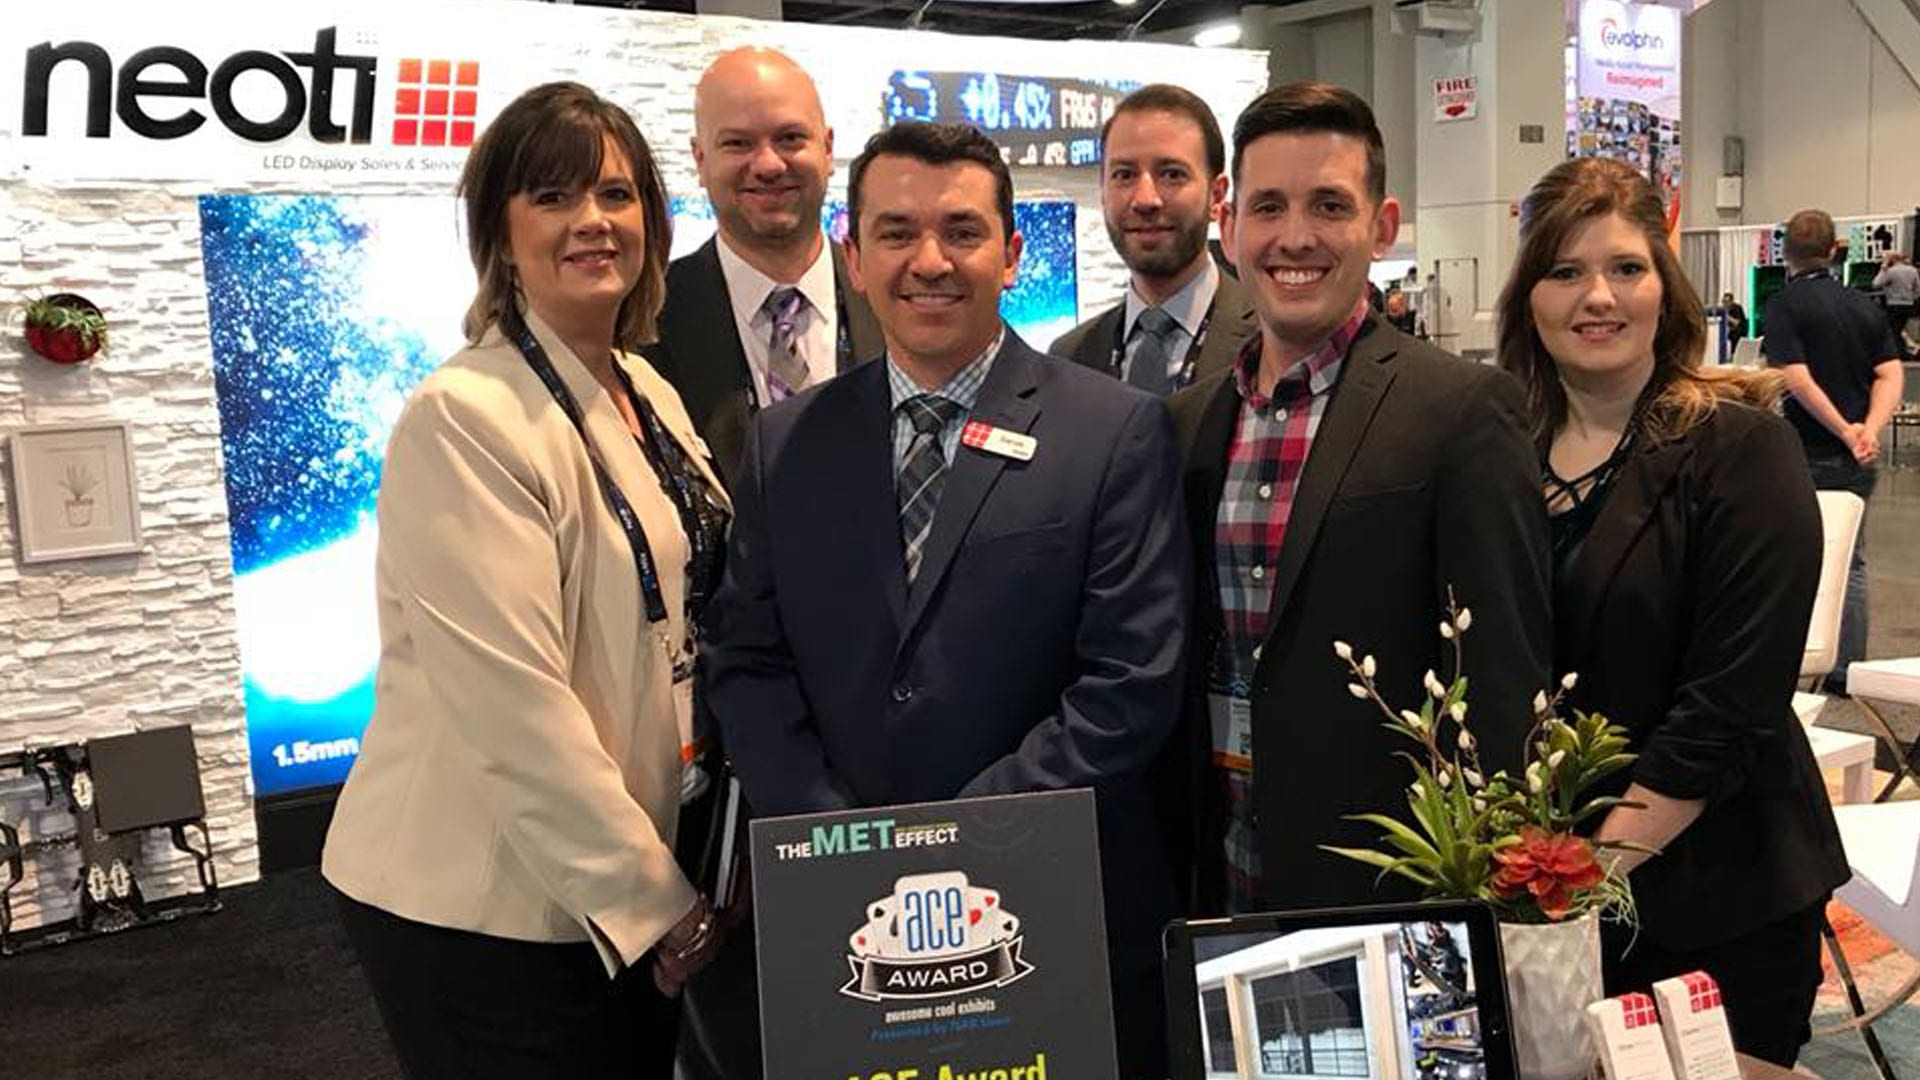 Neoti staff at NAB Las Vegas 2018 trade show